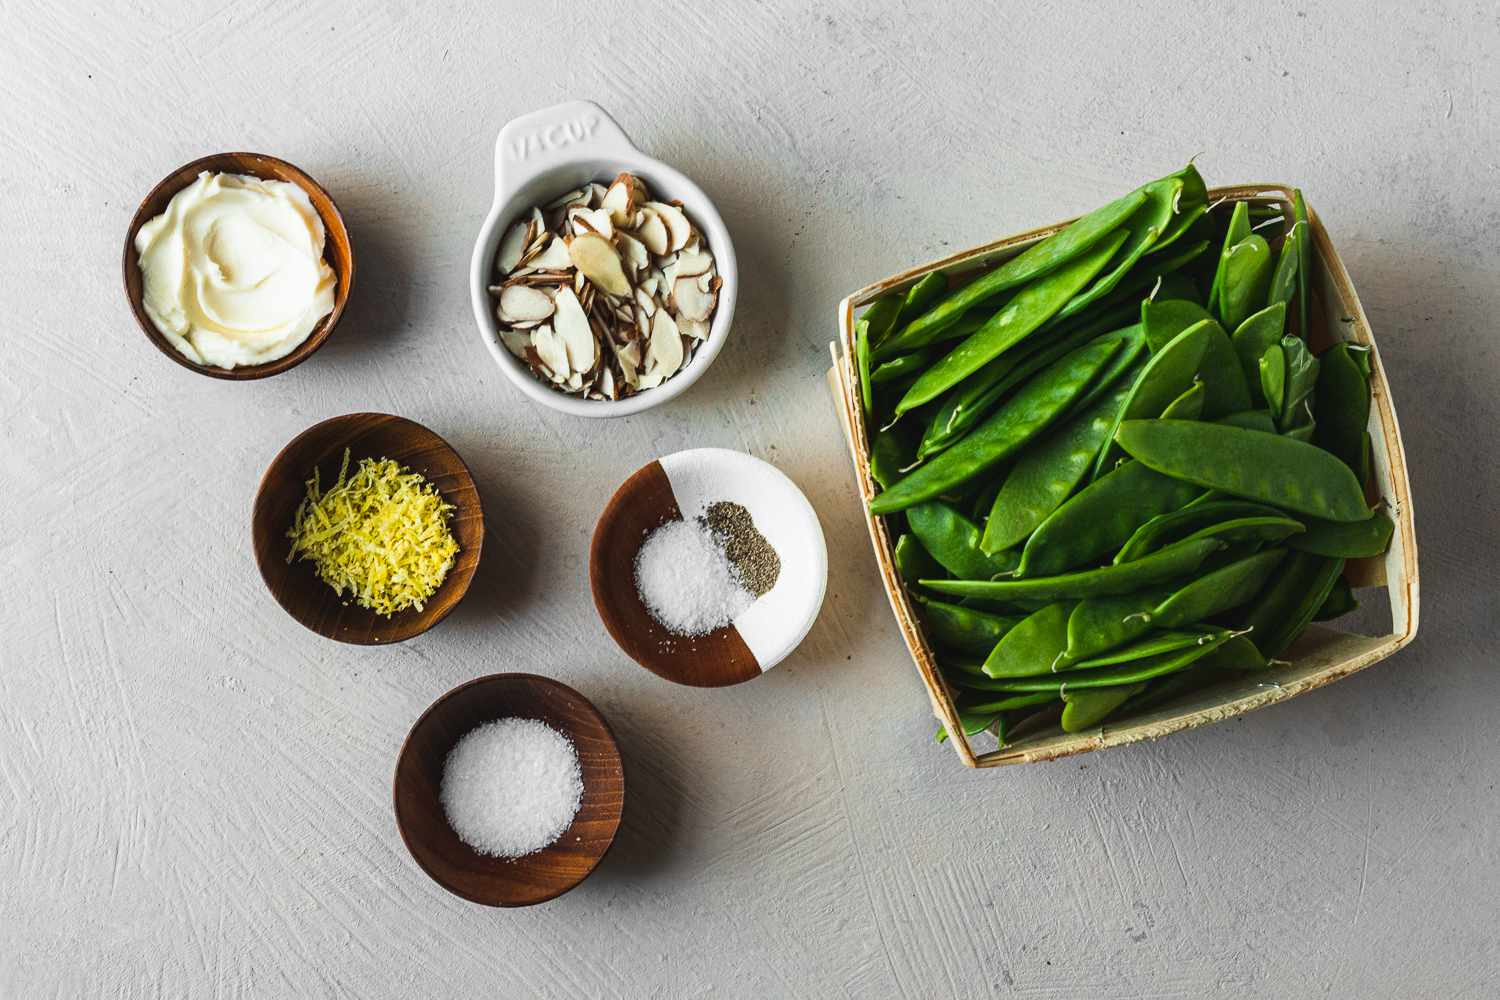 Ingredients for snow peas with butter and lemon